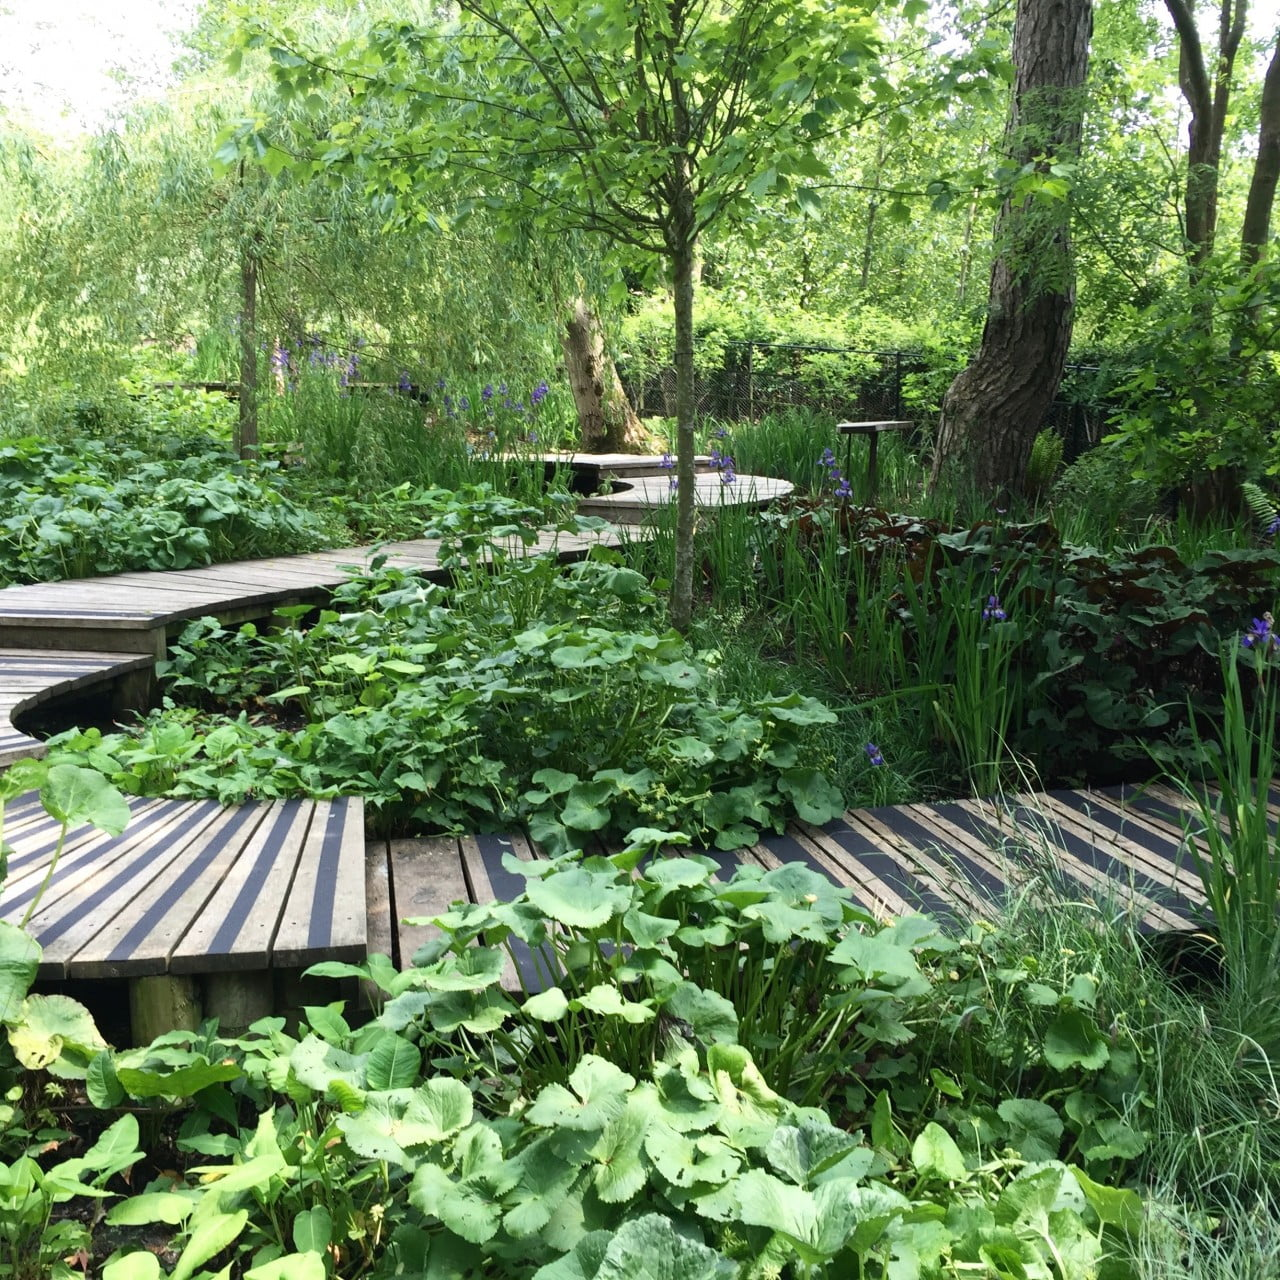 This is the boardwalk & bog garden with pretty ribbons of bog plants I designed for my client Kane. These are non slip strips